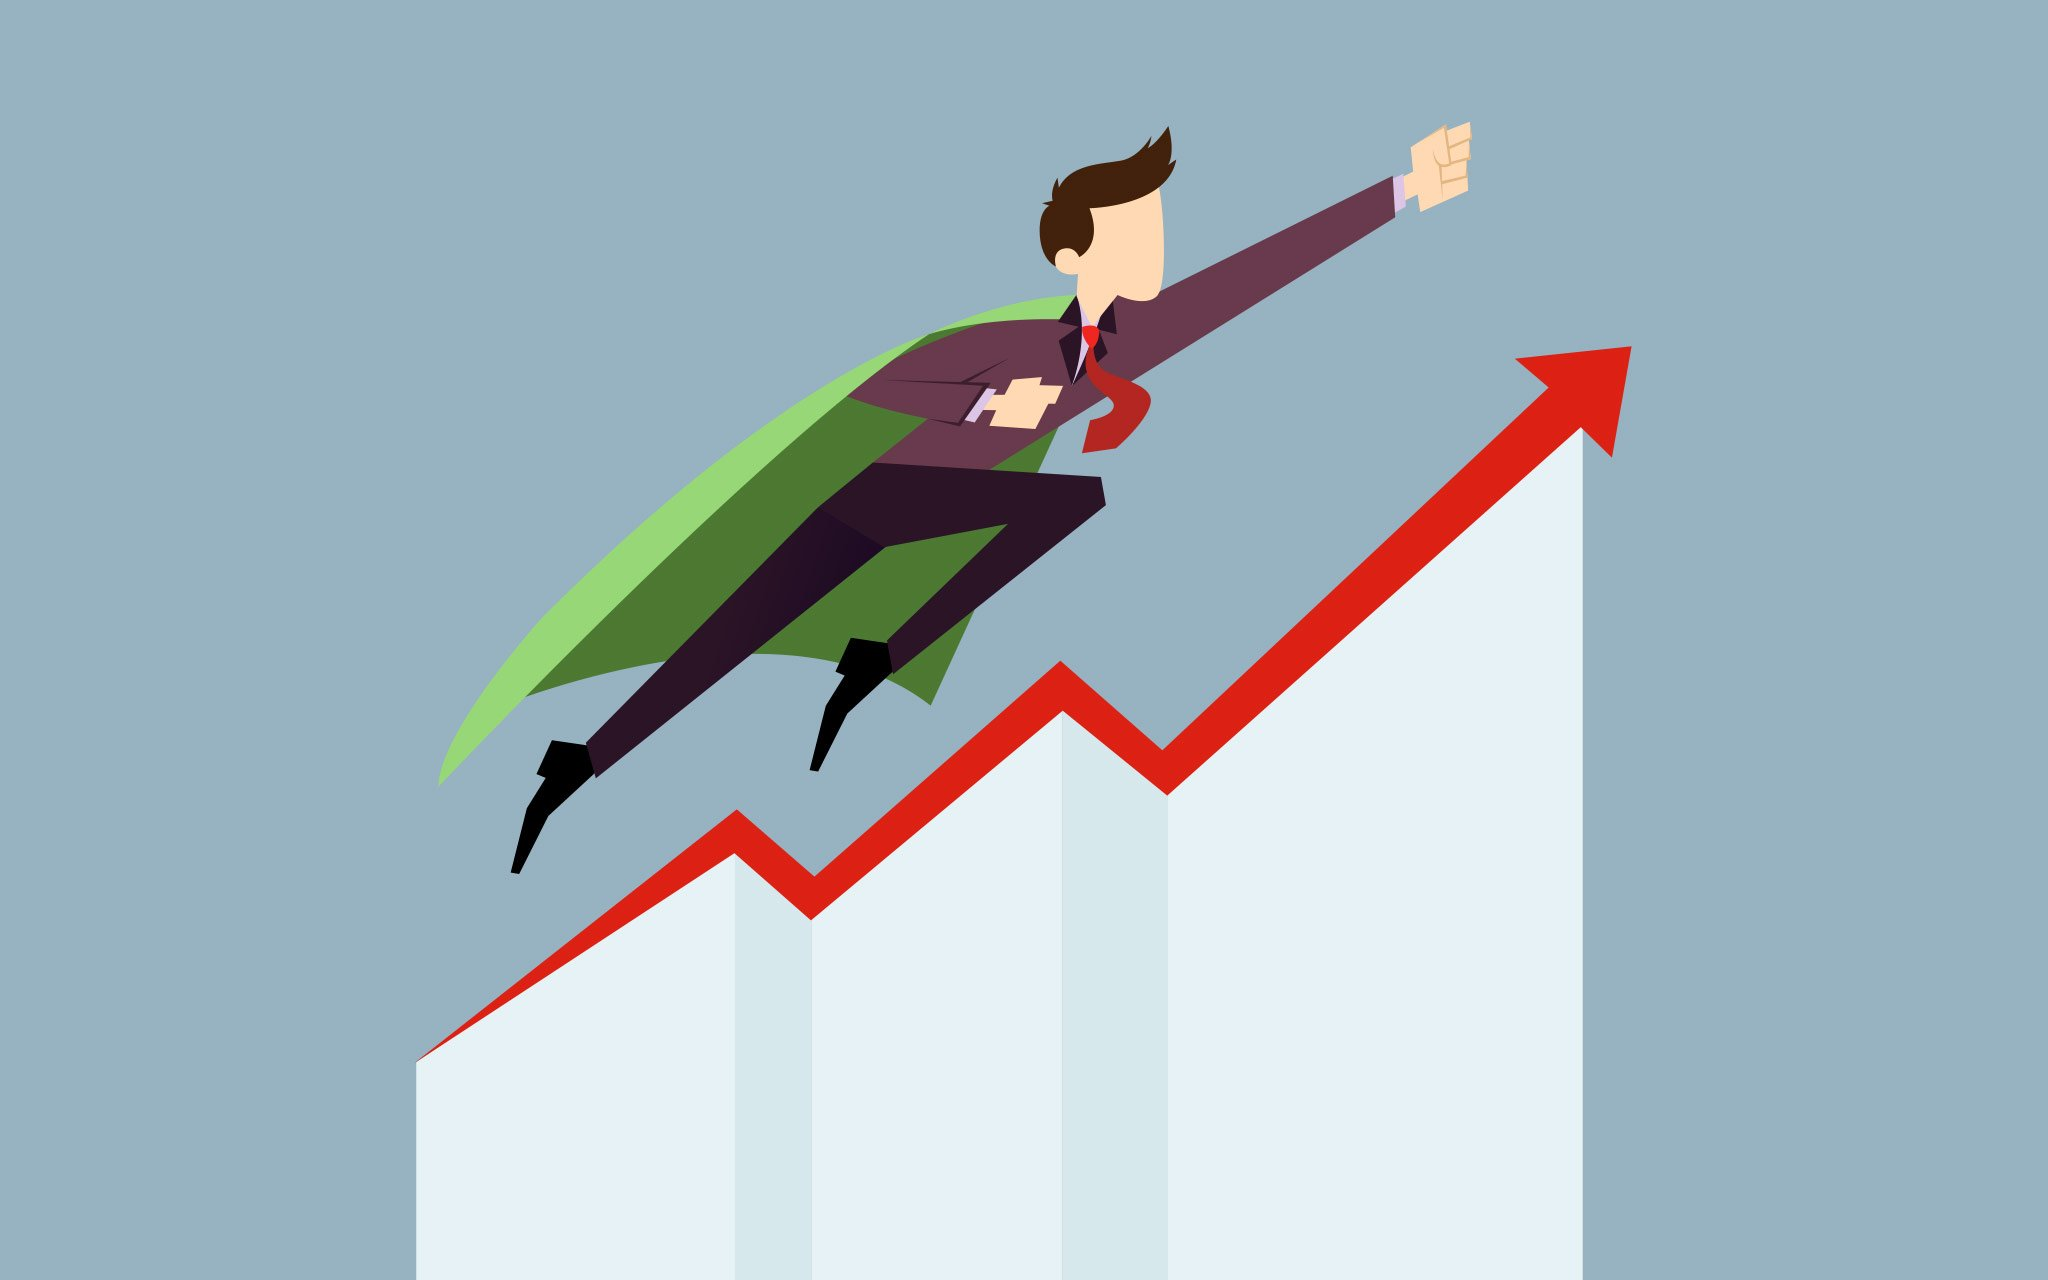 An image of a person soaring through charts with Performance Marketing, which is a way of app marketing.